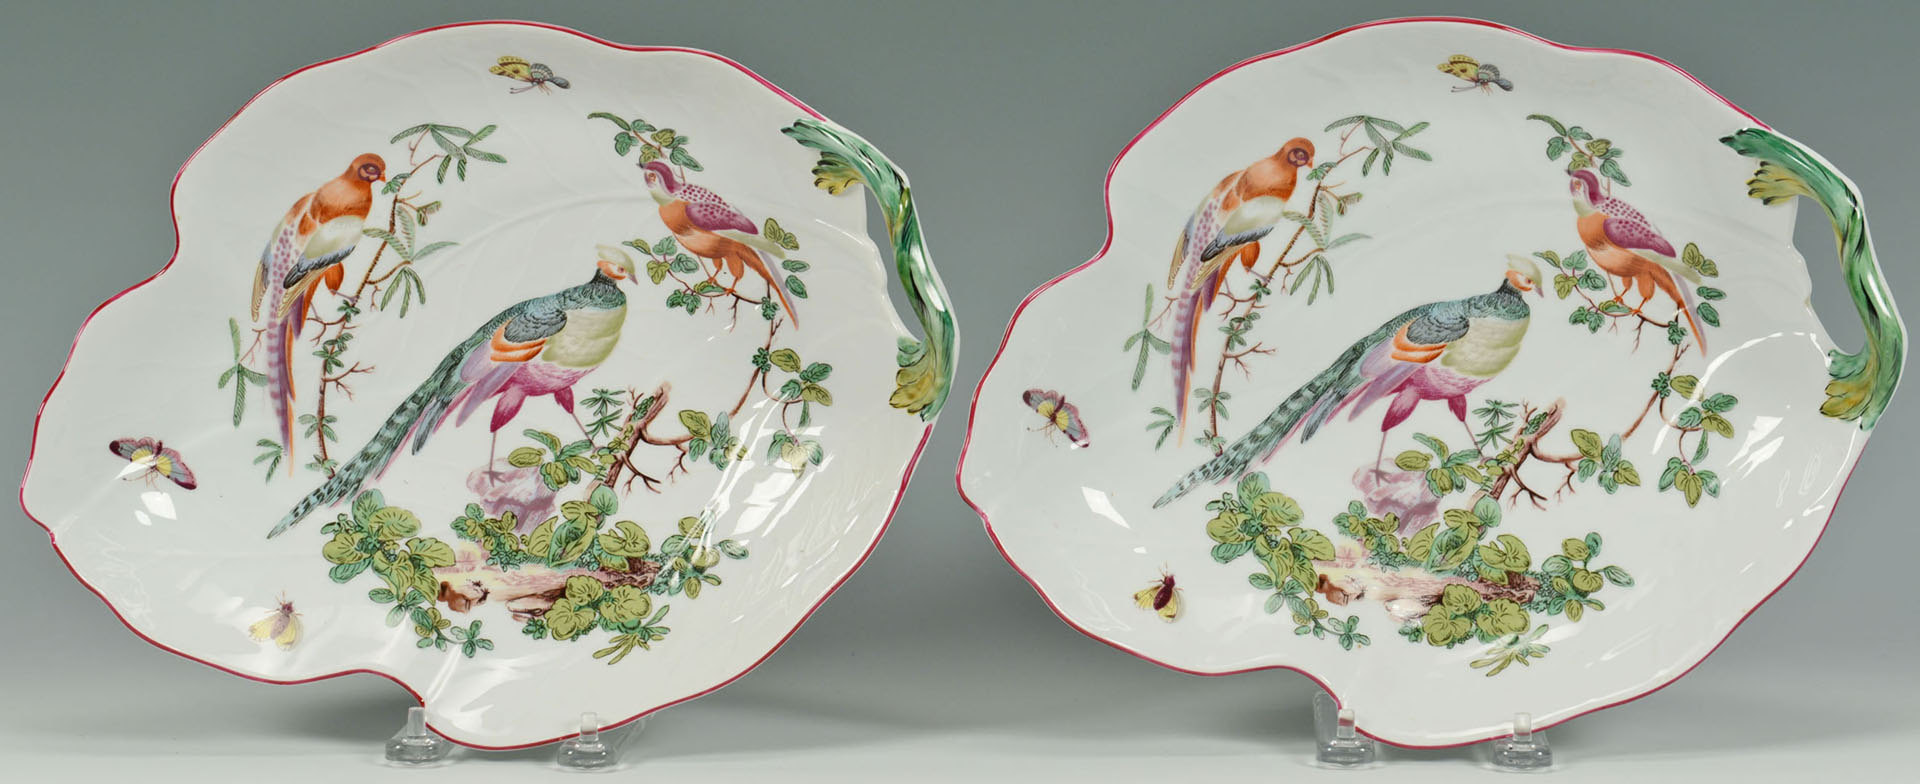 Lot 578: Williamsburg Mottahedeh Porcelain Set, 6 pcs